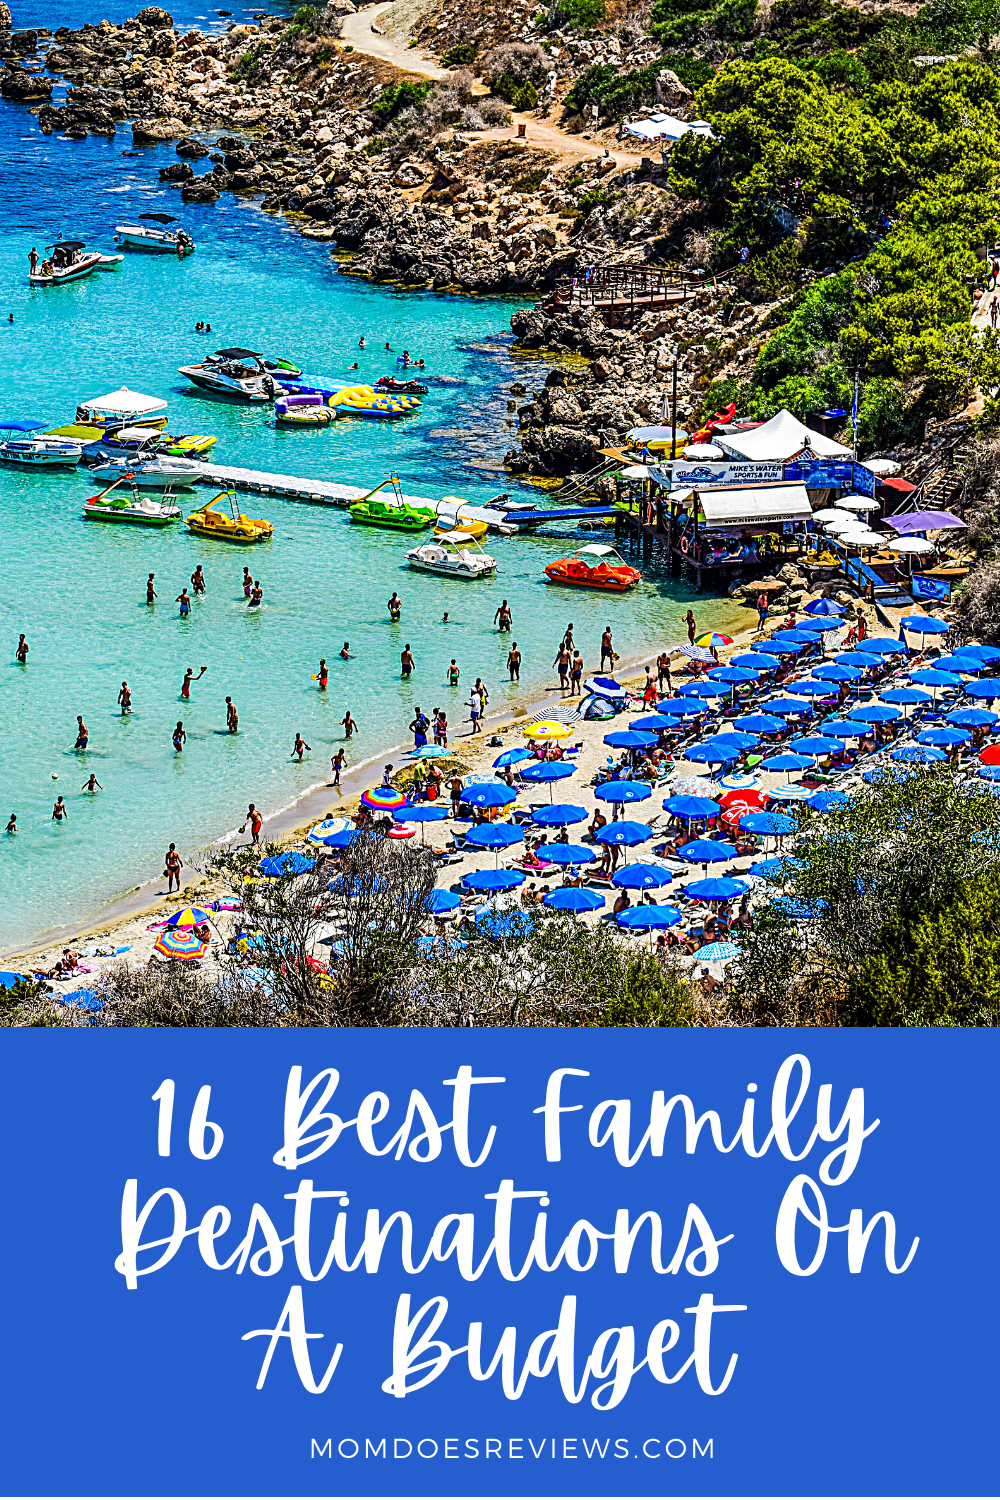 16 Best Family Destinations On A Budget in 2021